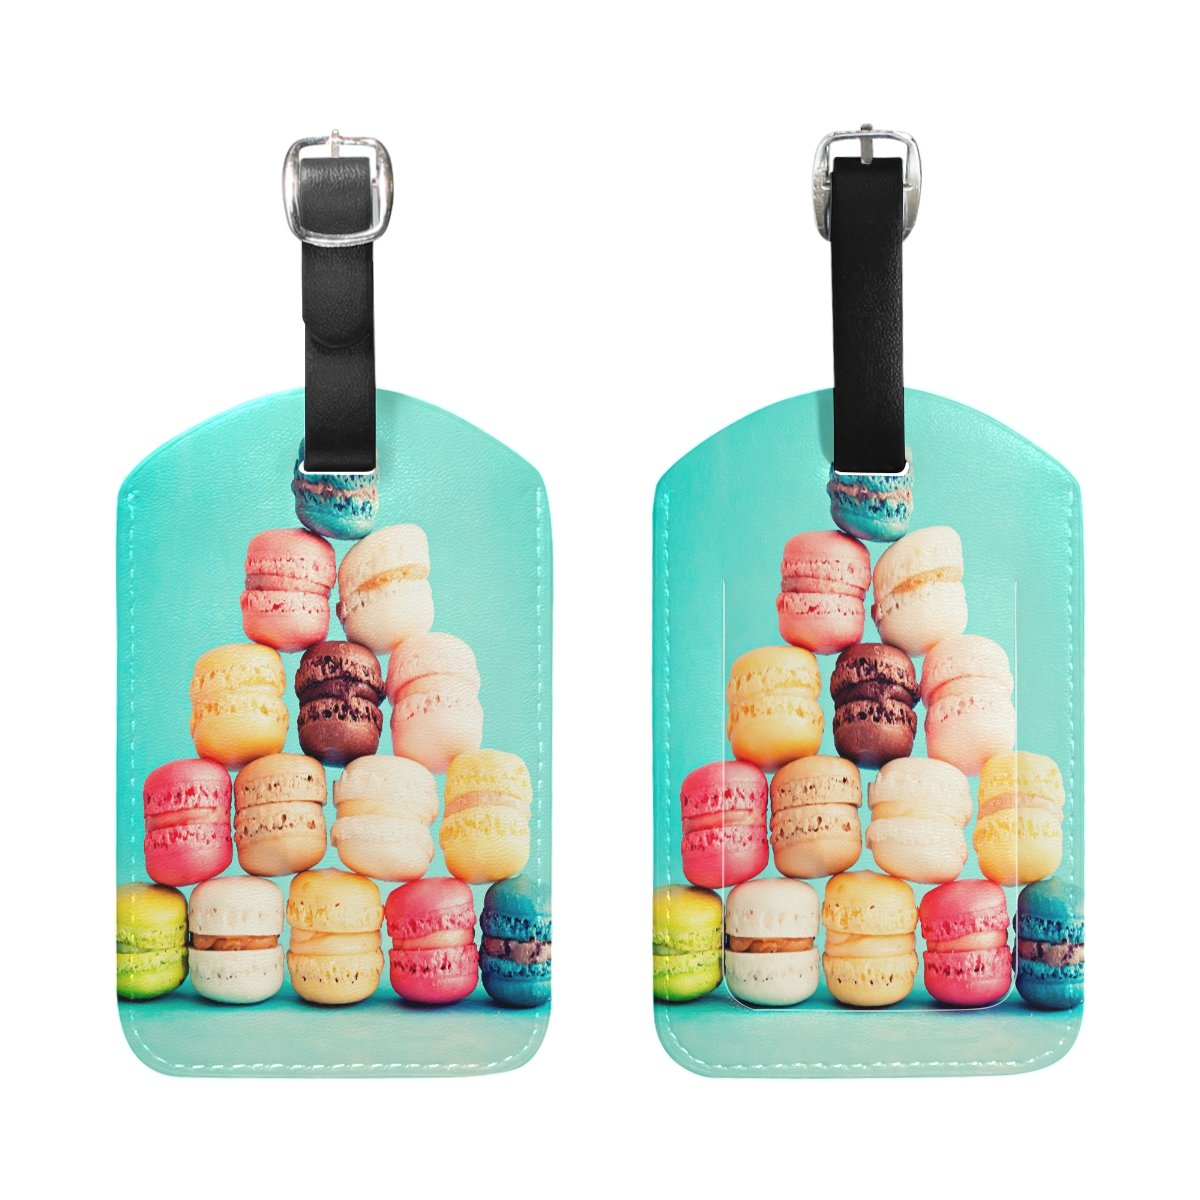 Saobao Travel Luggage Tag Sweets Colored Background Macaron PU Leather Baggage Suitcase Travel ID Bag Tag 1Pcs